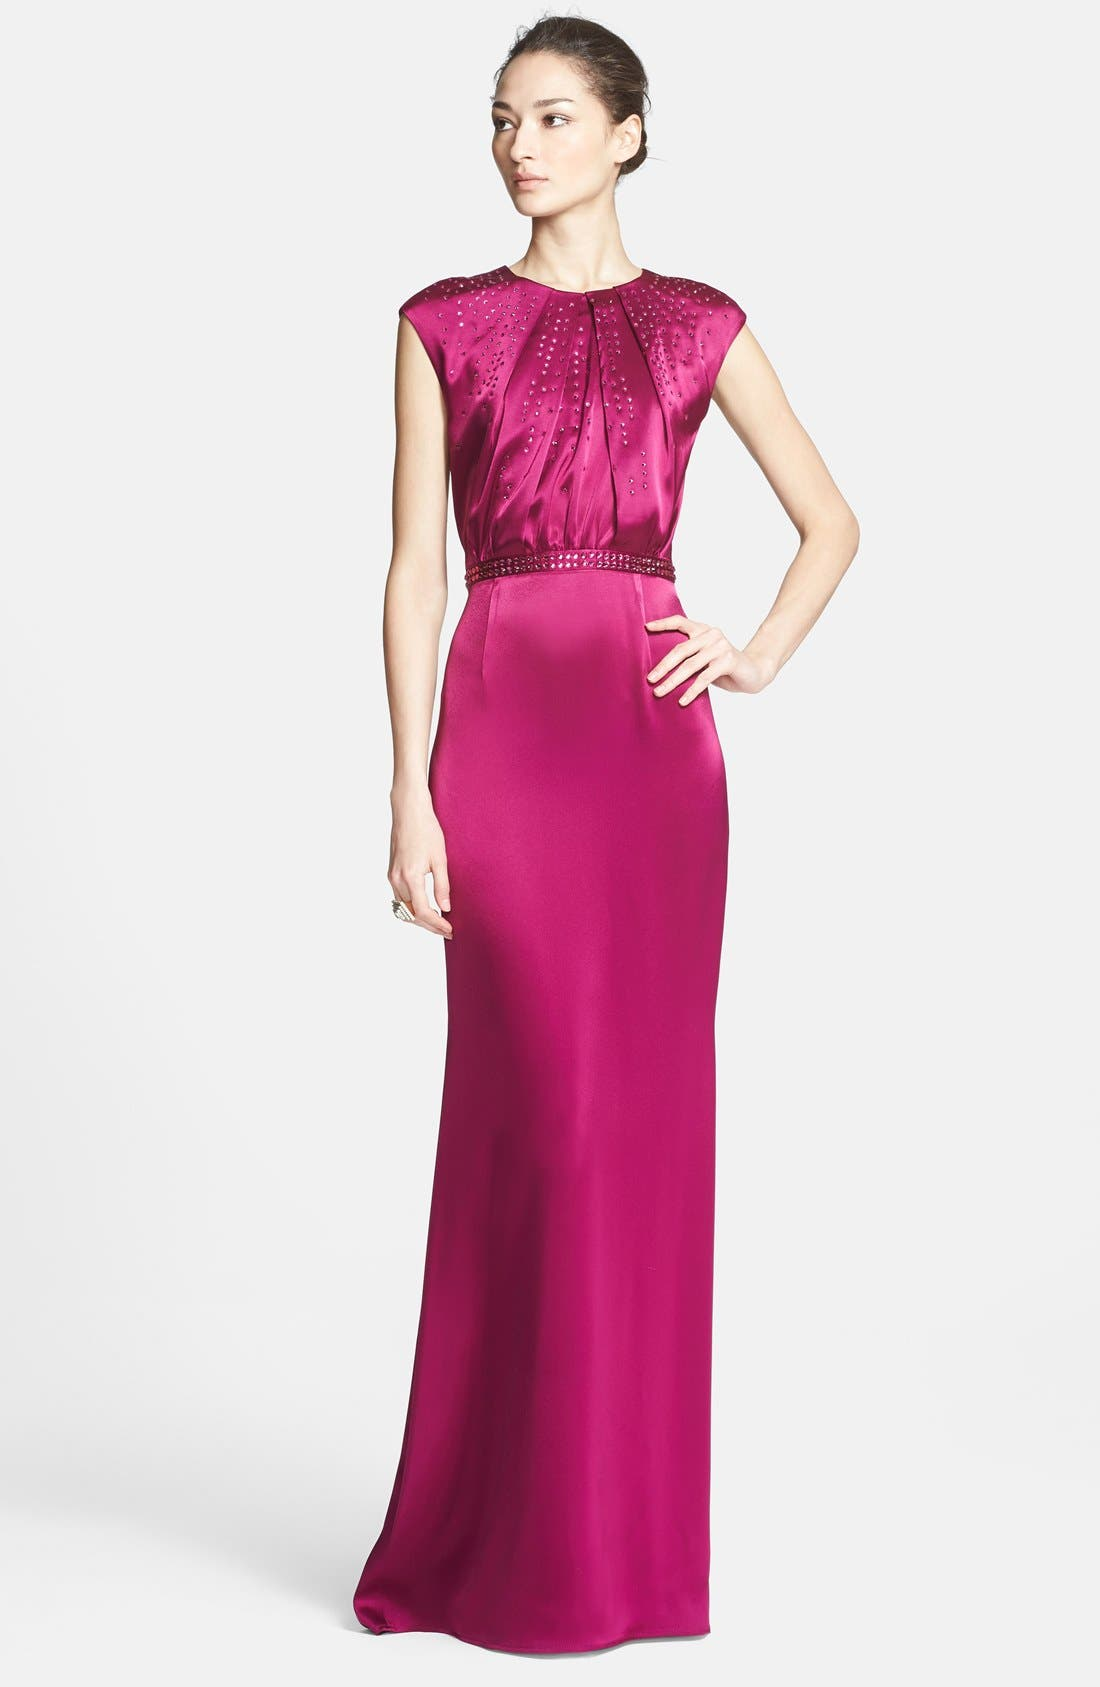 Main Image - St. John Collection Embellished Liquid Satin Gown with Train